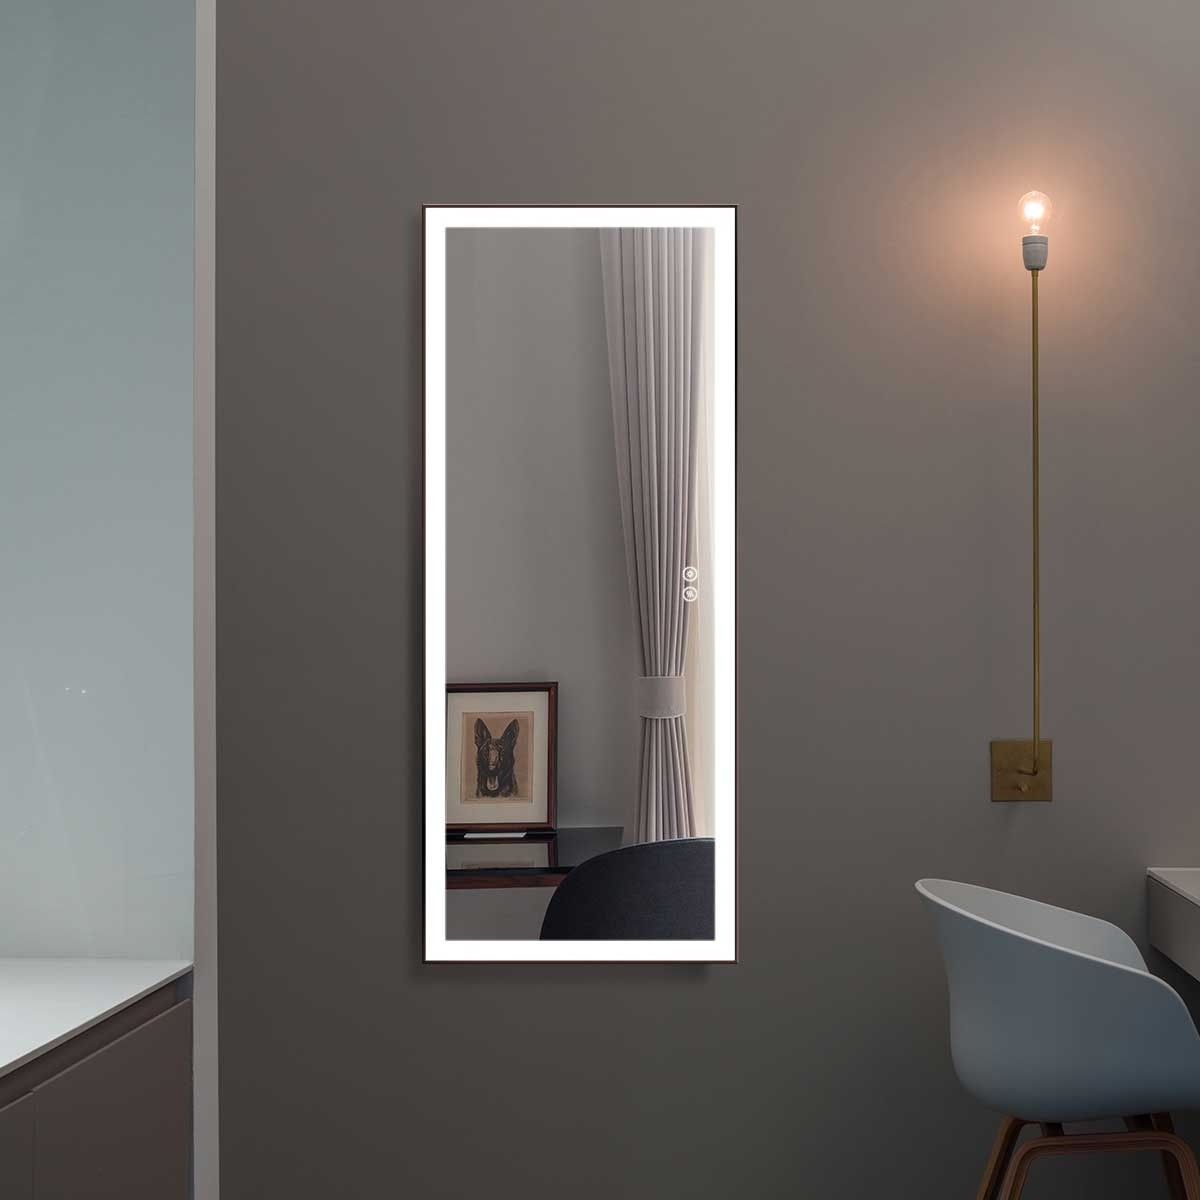 DECORAPORT 48 x 20 Inch LED Full-Length Mirror/Dressing Mirror with Touch Button, Black Frame, Dimmable, Plug-in, Floor Standing  & Wall Mounted (DJ2-4820-B)